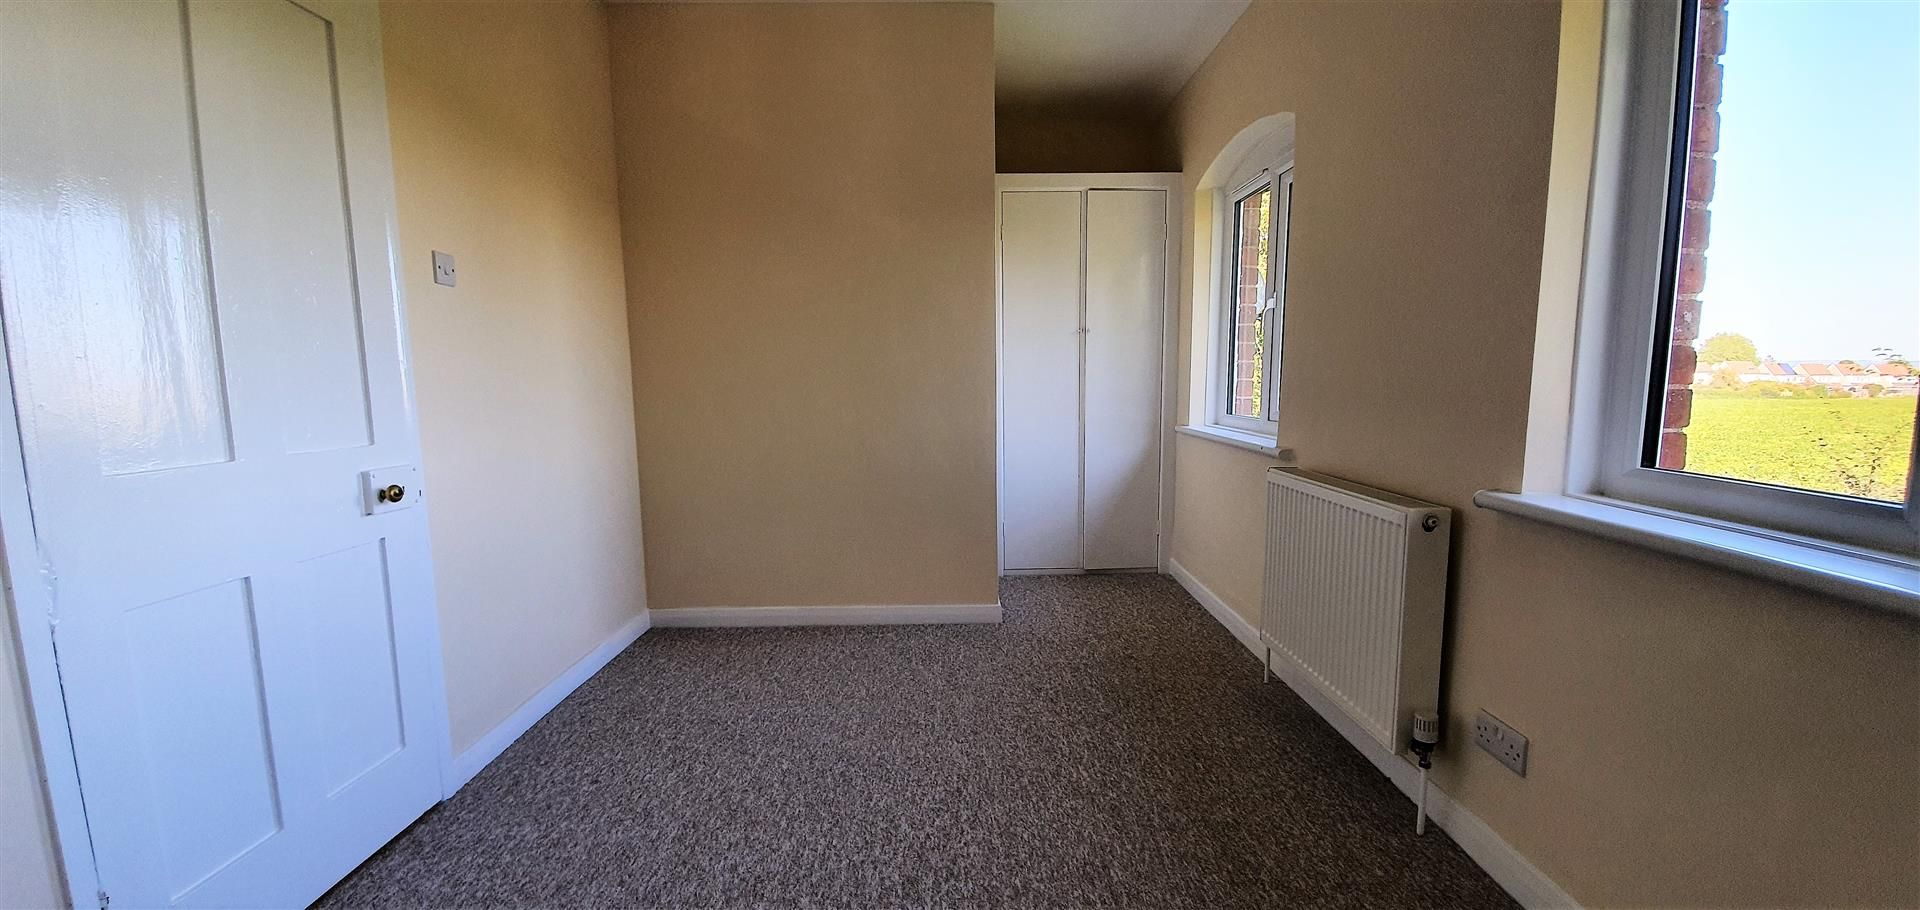 4 bed house to rent in Breinton 8